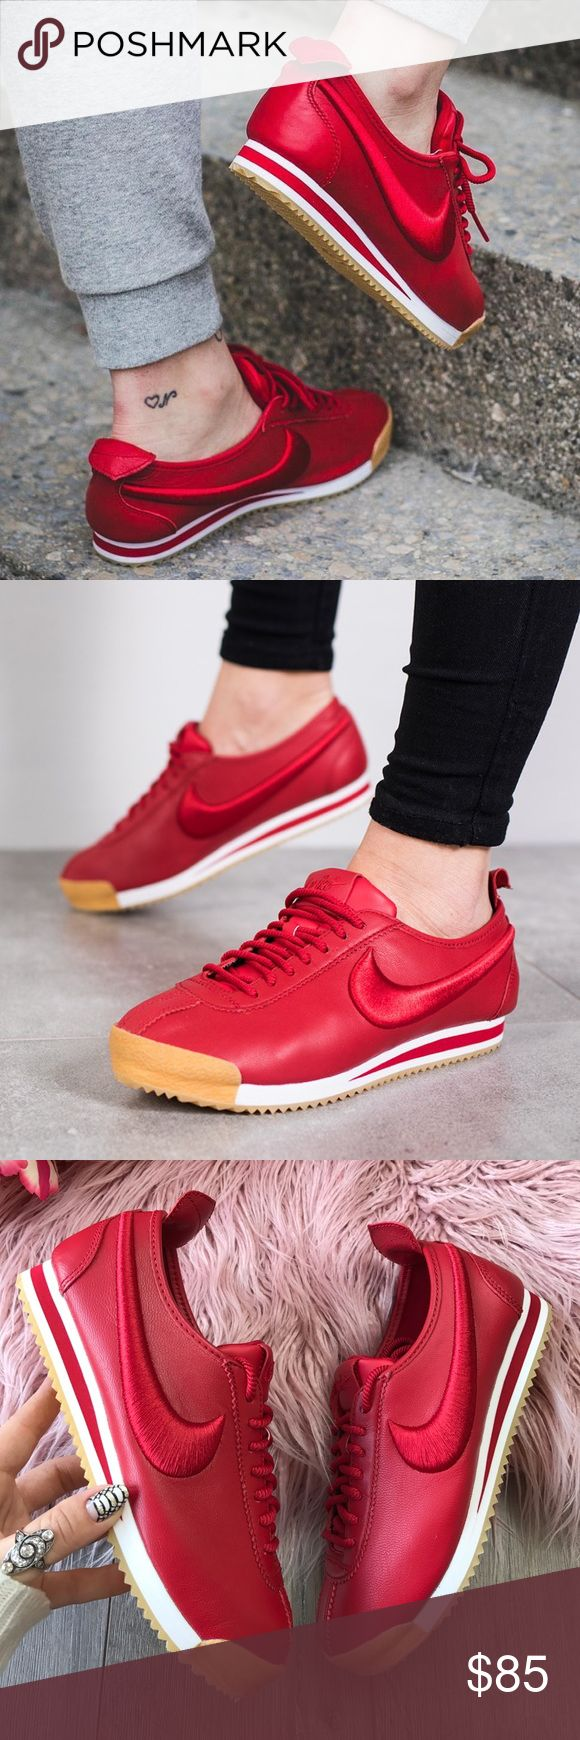 NWT Nike Cortez SI red 👺 Brand new with box no lid, price is firm!Nike Women's Cortez '72 SI Casual Shoe The 1972 classic Cortez is back with a twist. The Nike Cortez Casual Shoes are here with a modern take on that heritage look you know and love.   The smooth ripstop upper provides lightweight comfort and is inspired by the iconic Windrunner Jacket Solarsoft foam midsole offers the most comfortable version of the Cortez yet Foam midsole allows for plenty of impact protection. Nike Shoes…